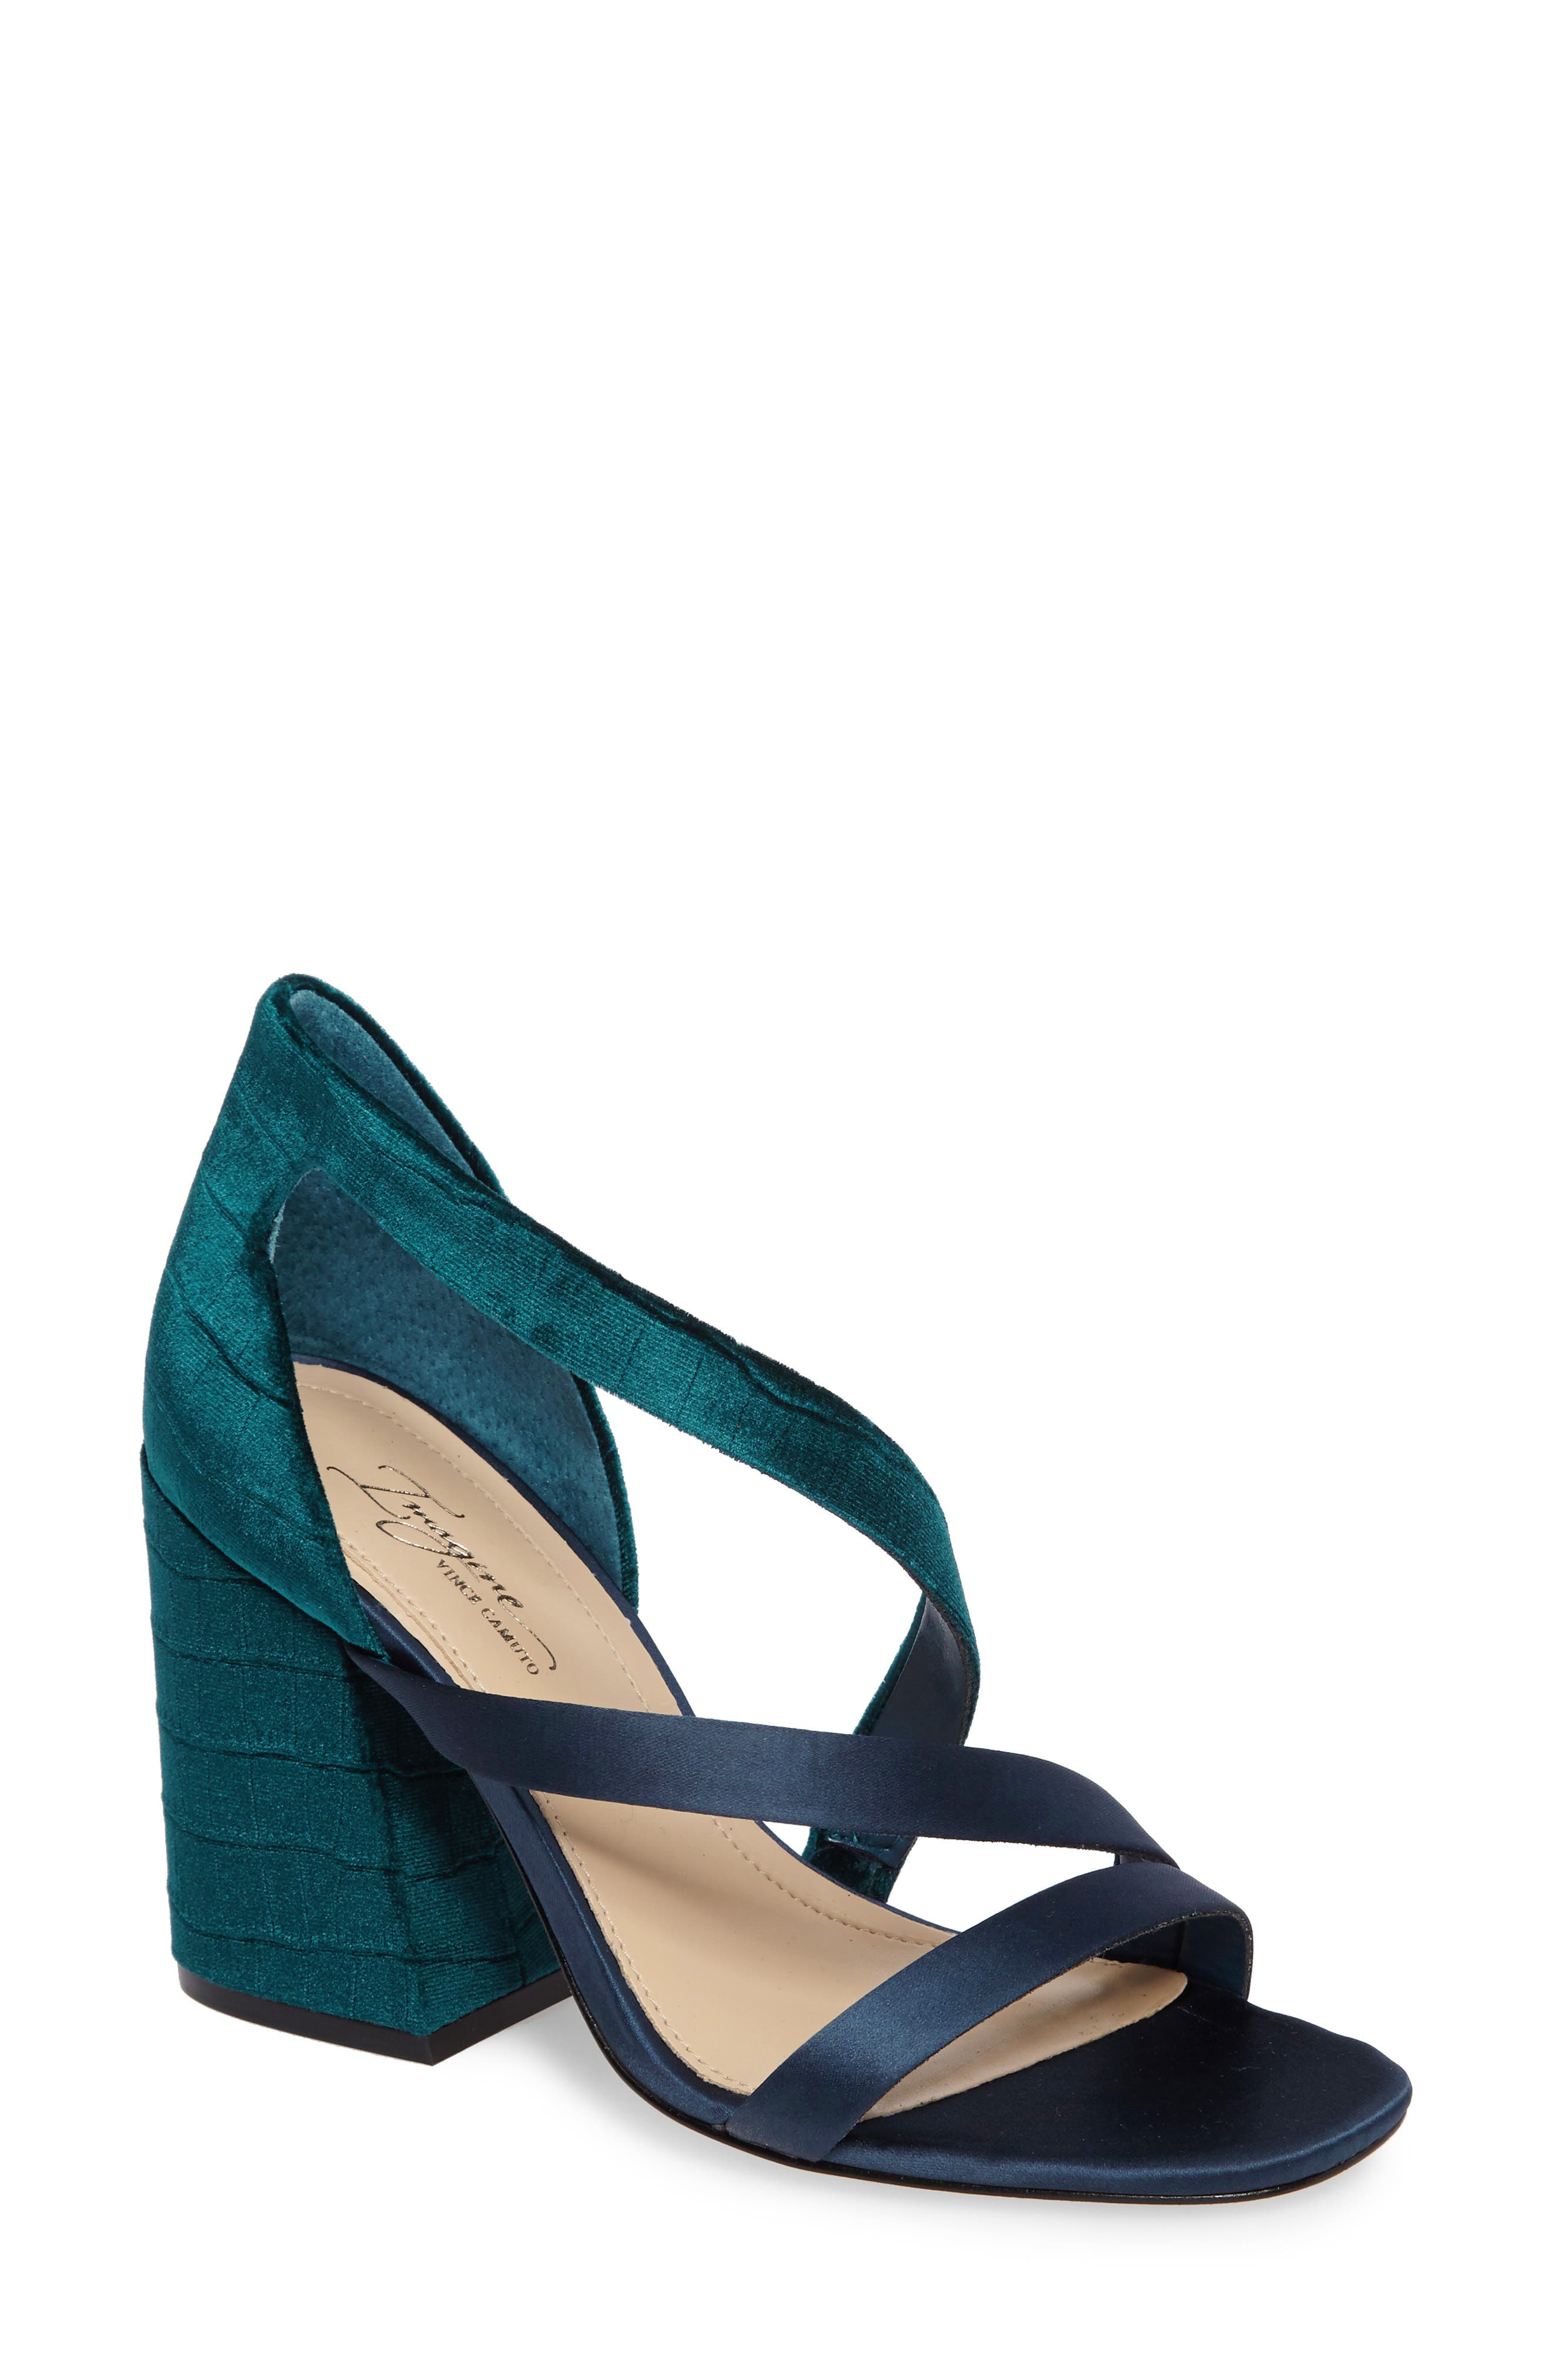 Alternate Image 1 Selected - Imagine by Vince Camuto Abi Sandal (Women)